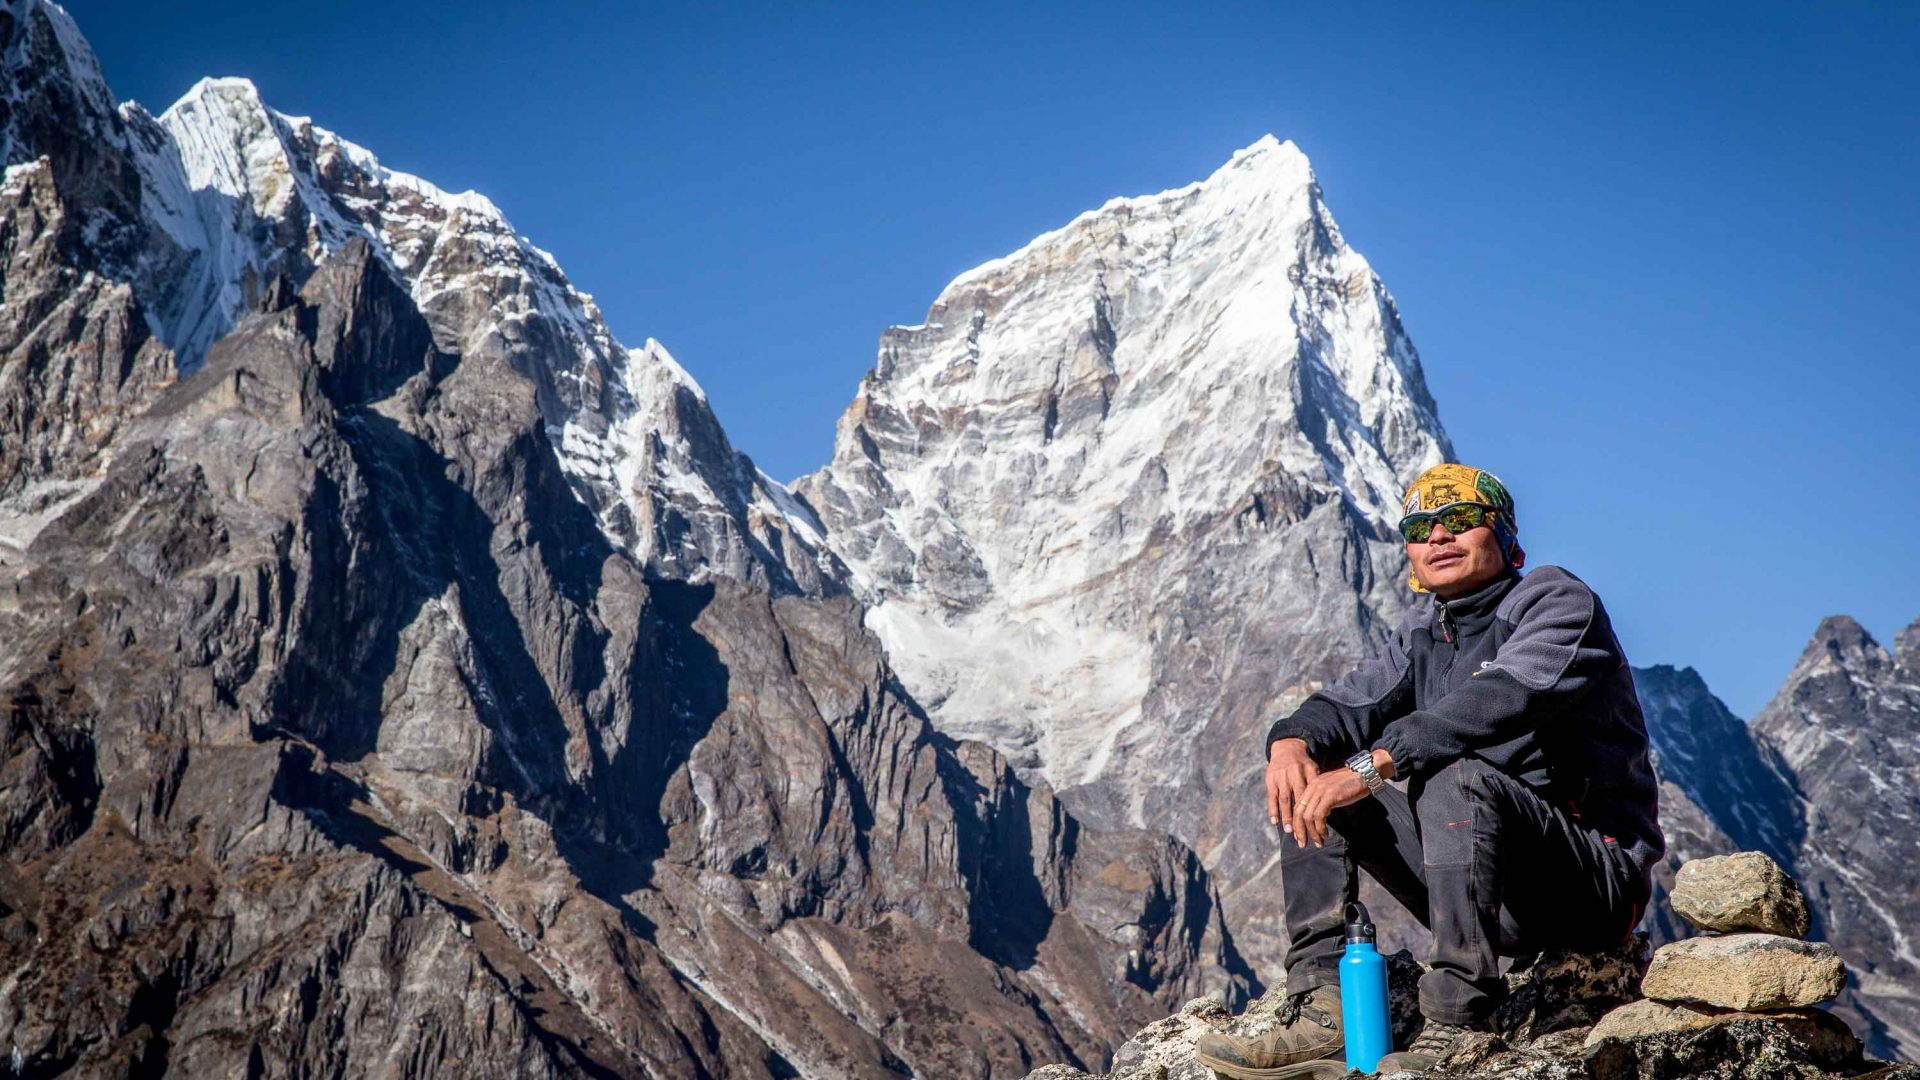 A porter relaxes and enjoys the view during the Everest Base Camp trek.